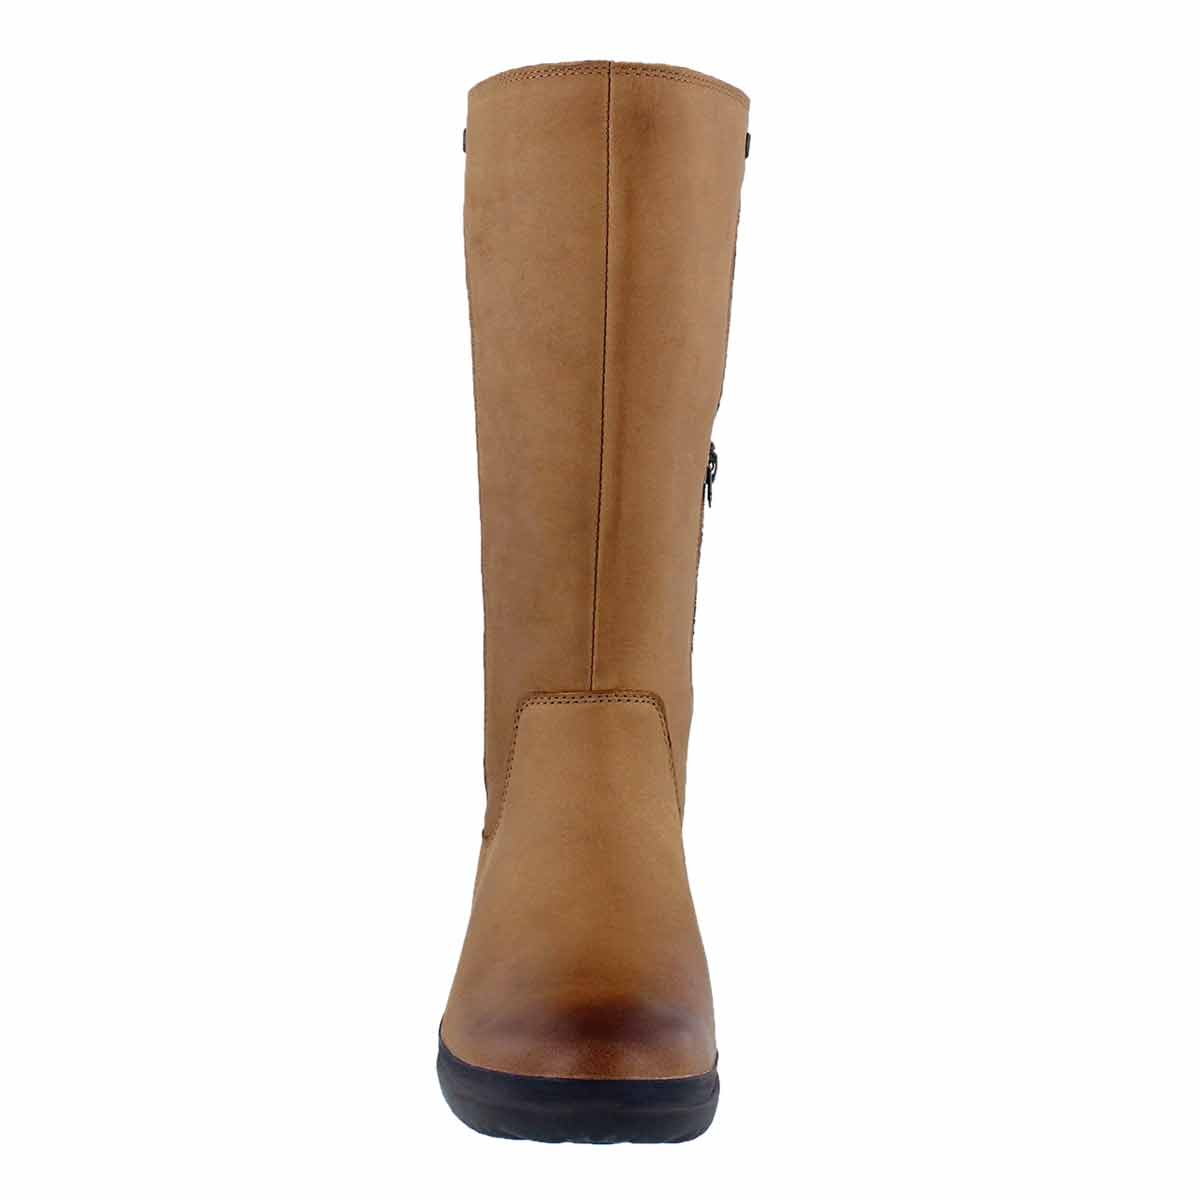 Lds Janina chestnut wtpf knee high boot